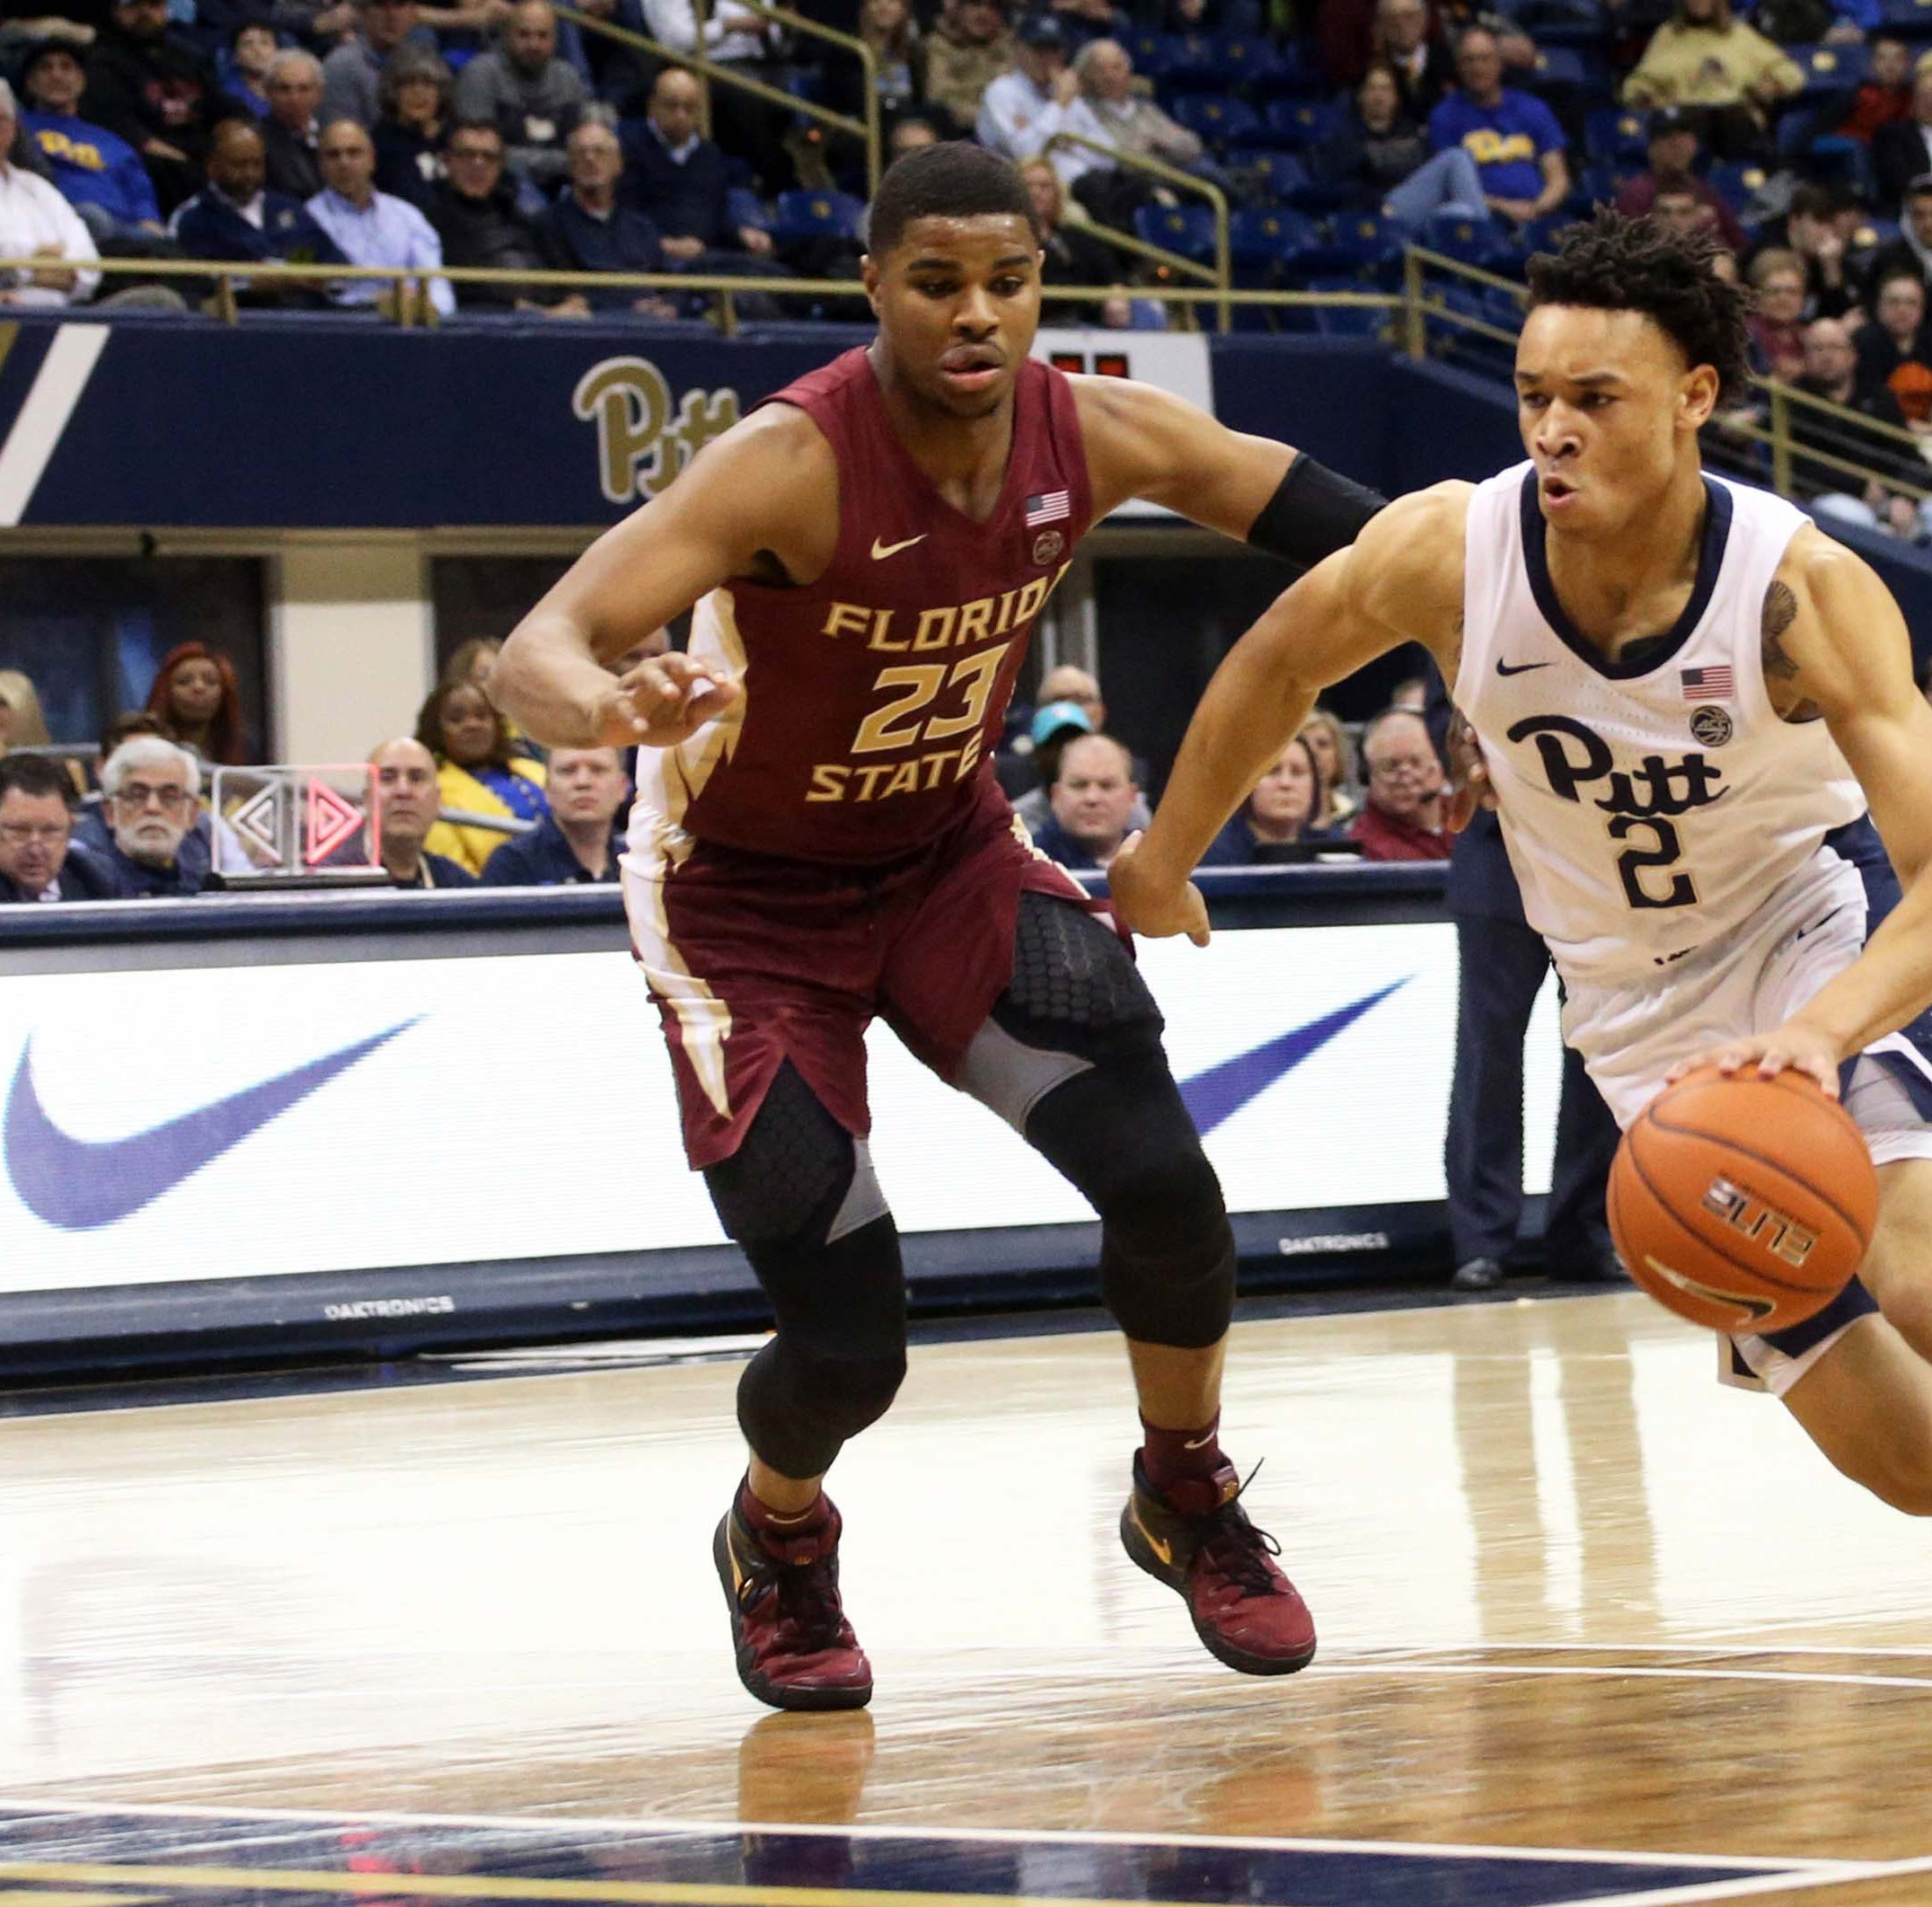 Seminoles struggles continue against Pitt